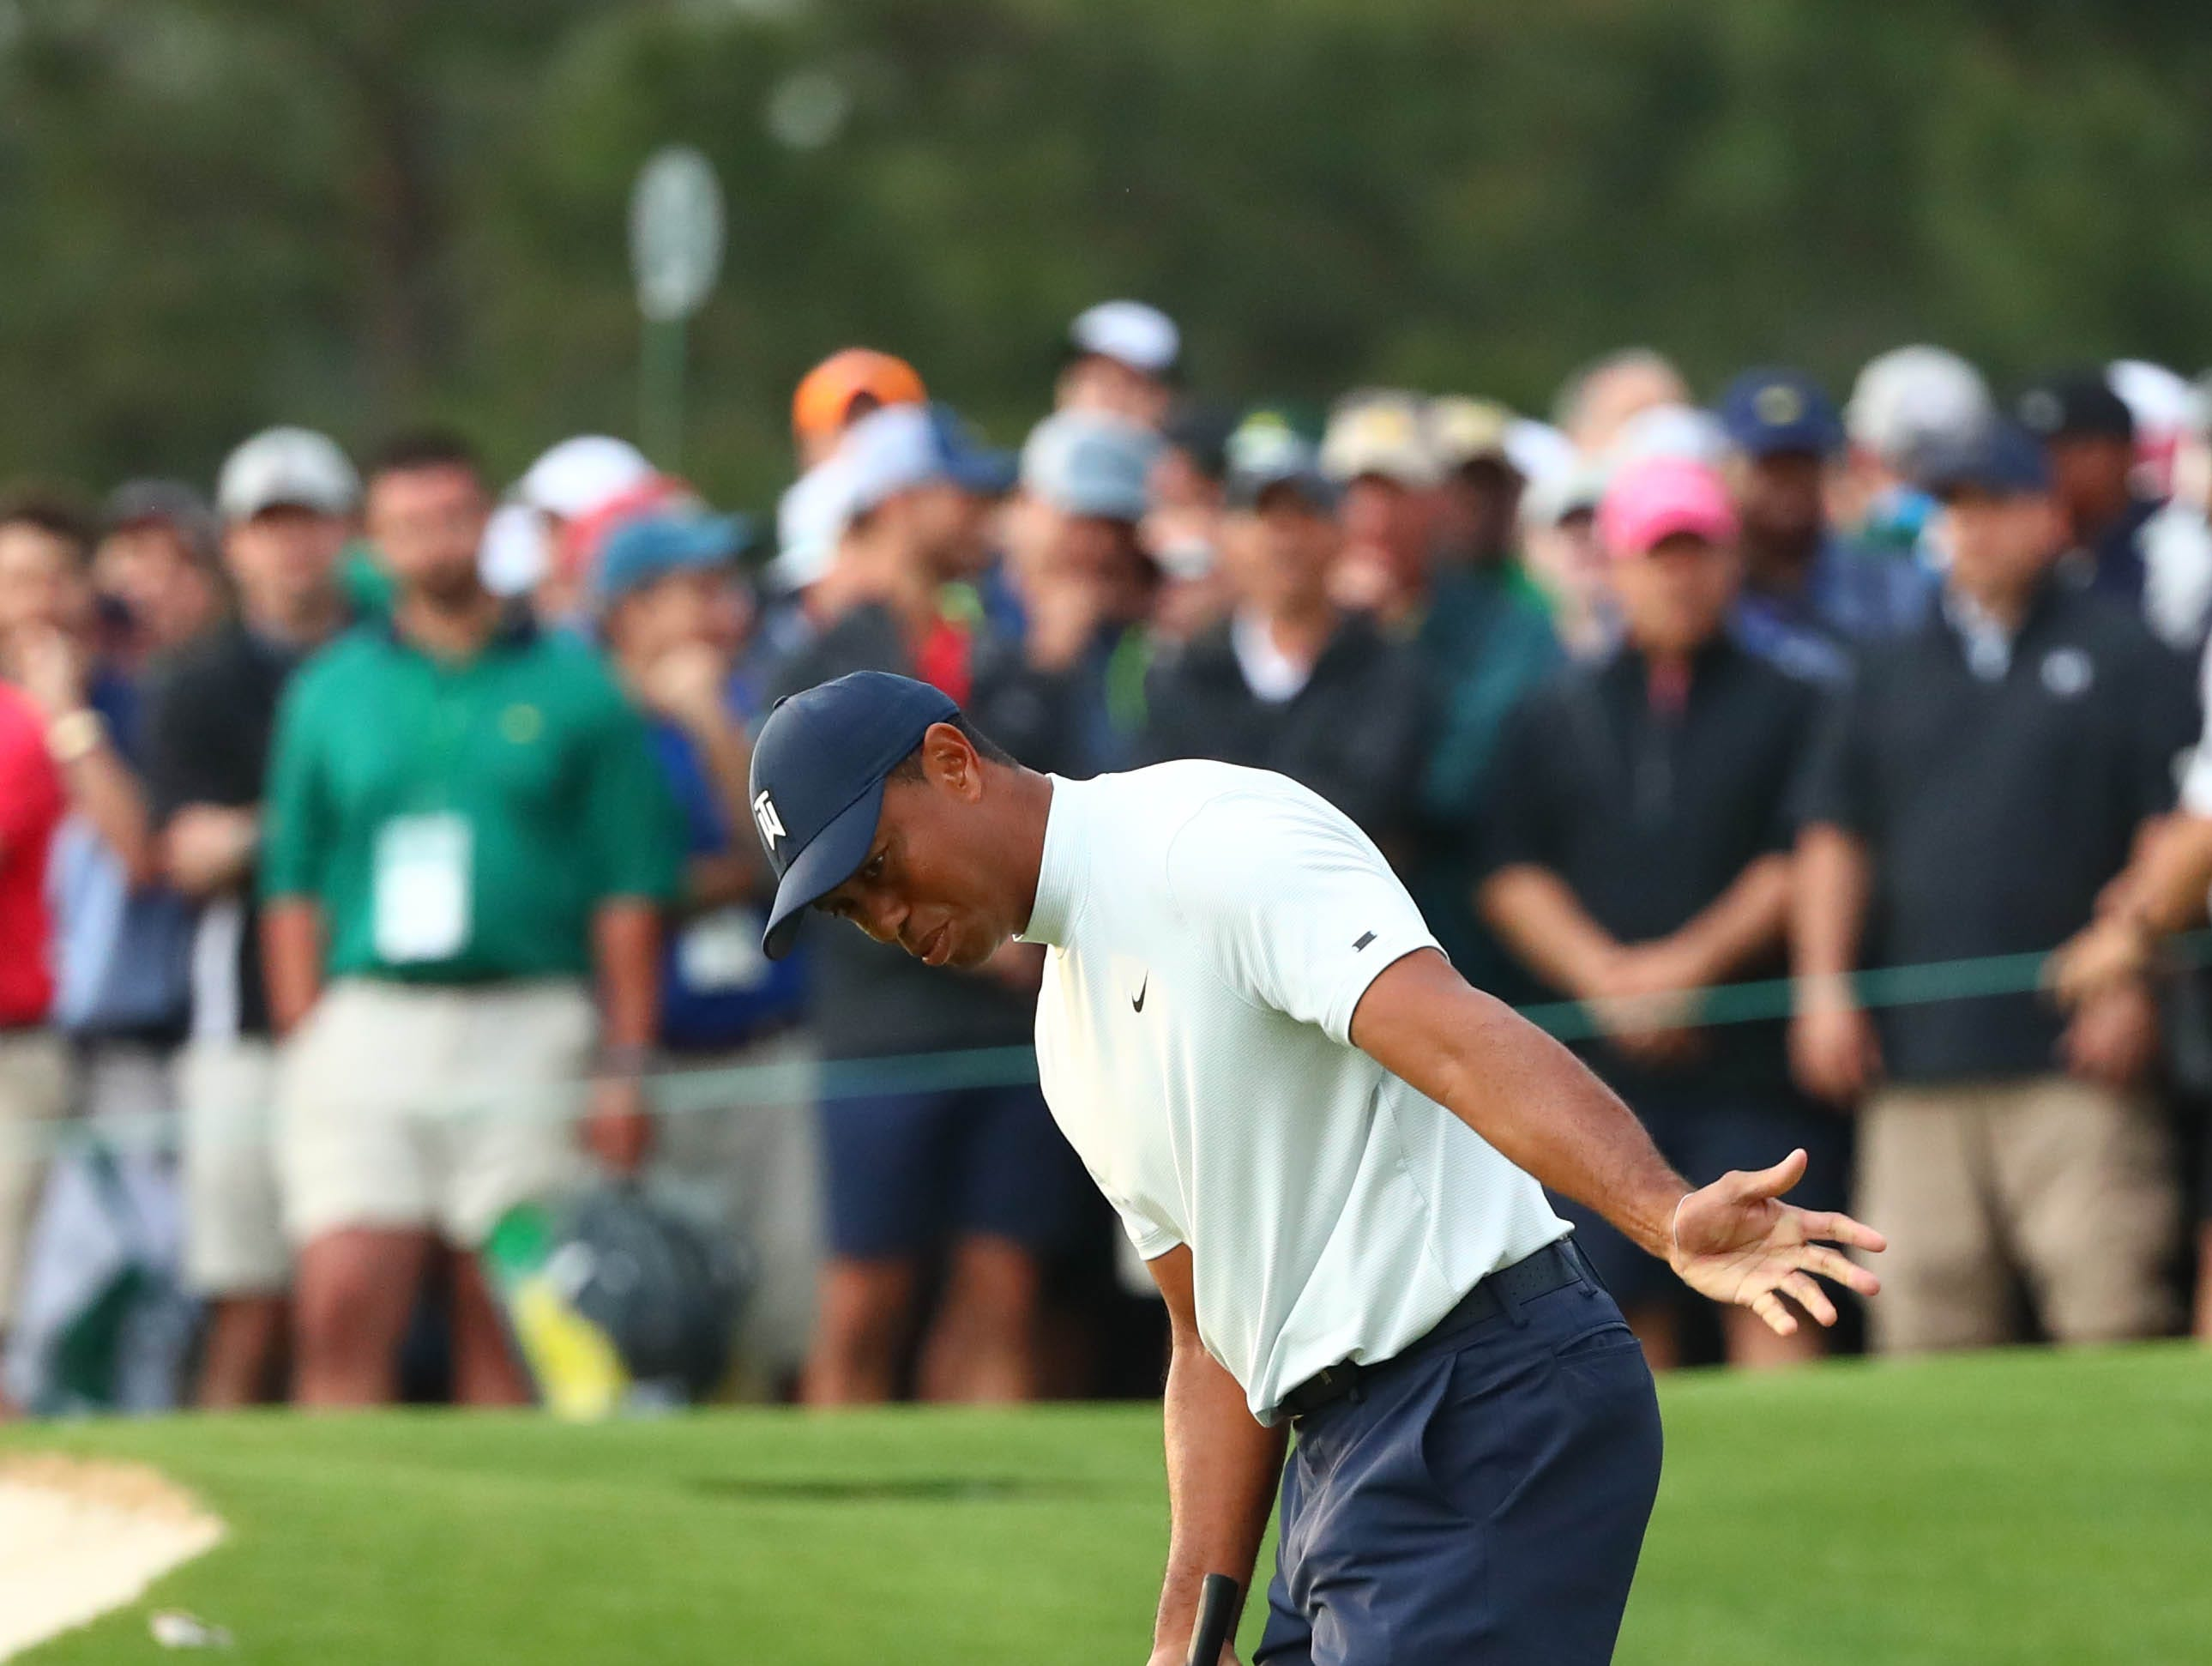 Apr 12, 2019; Augusta, GA, USA; Tiger Woods reacts after missing a putt on the 17th green during the second round of The Masters golf tournament at Augusta National Golf Club. Mandatory Credit: Rob Schumacher-USA TODAY Sports